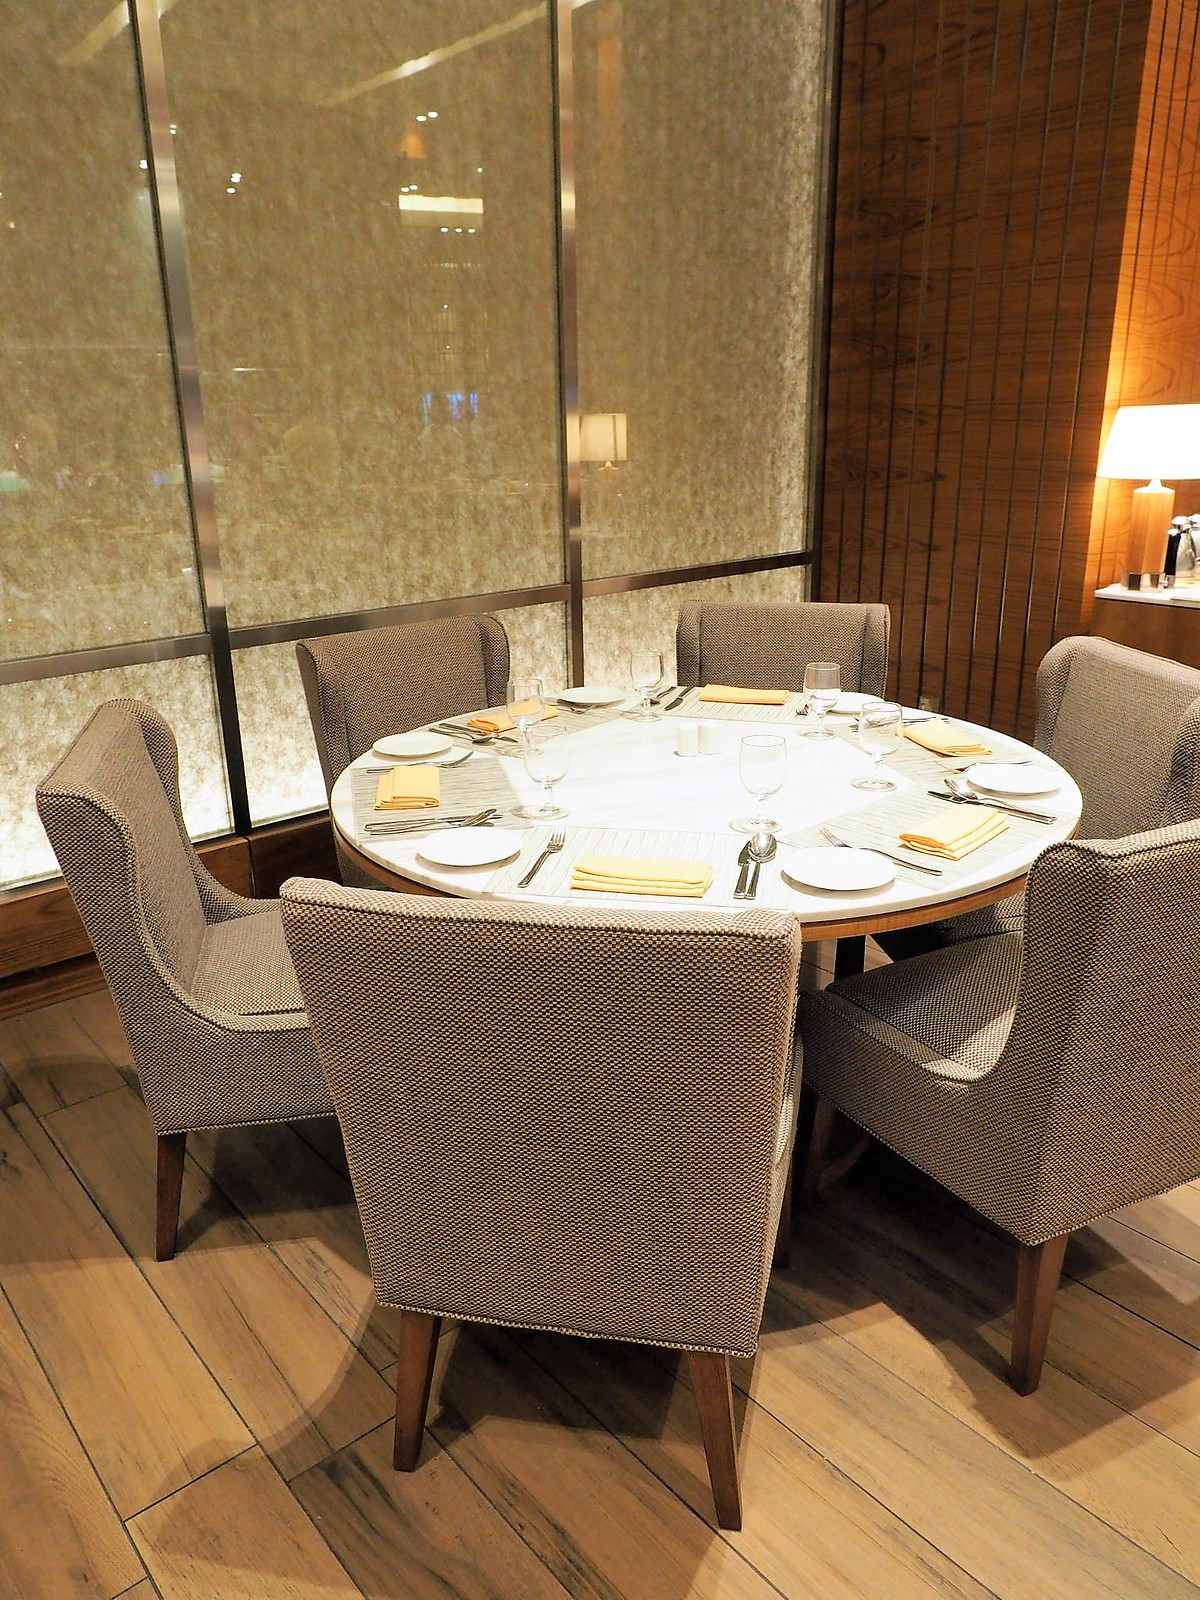 Round Dining Table At Feast Sheraton Petaling Jaya